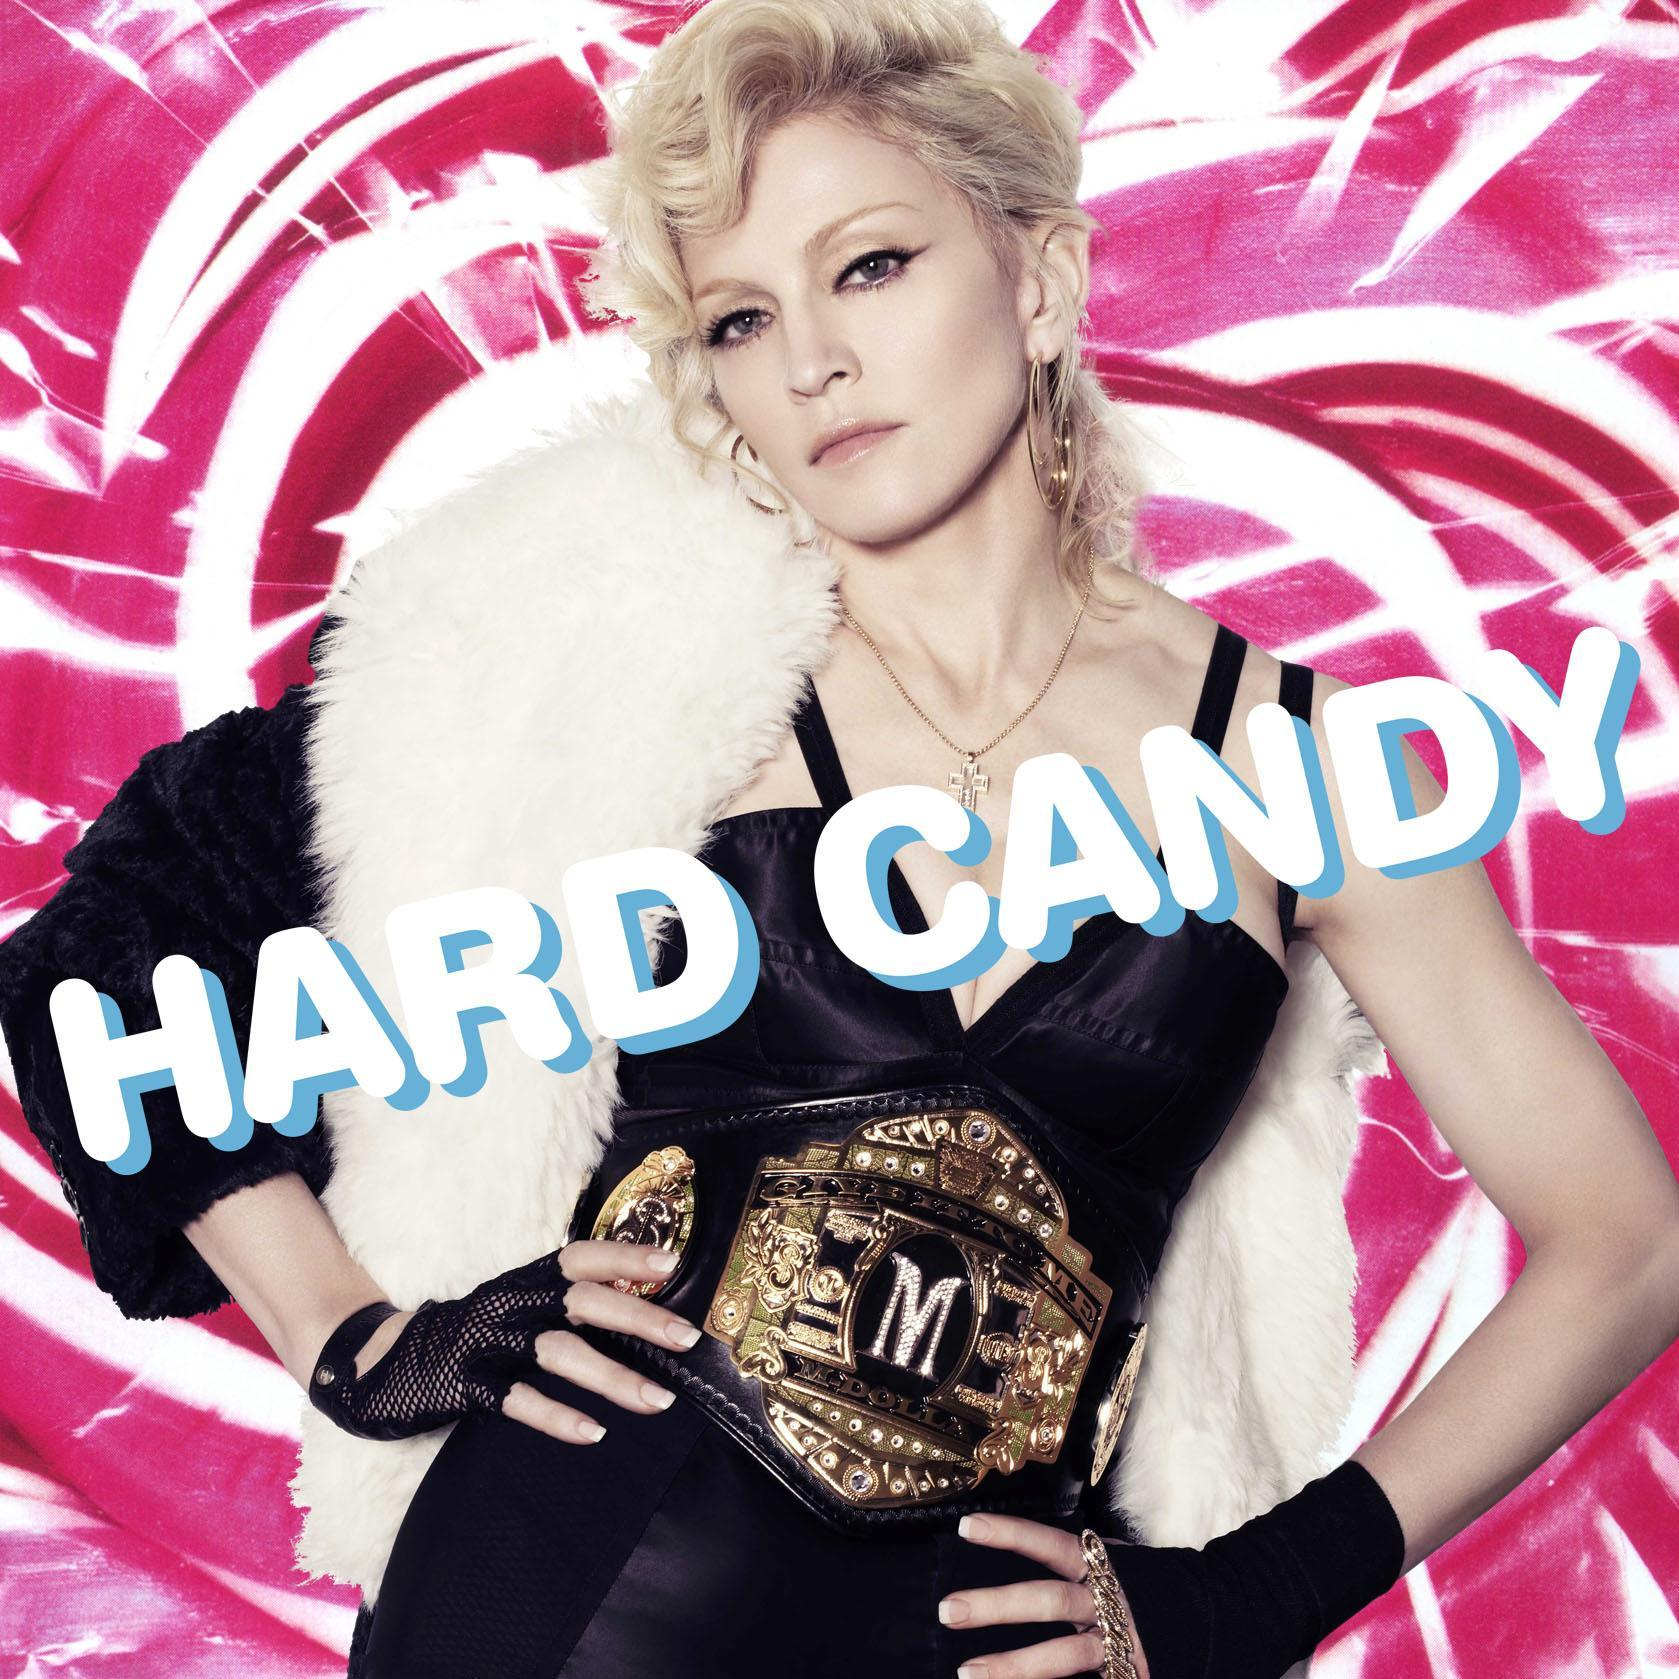 Which song DOESN'T belong in the ''Hard Candy'' album?